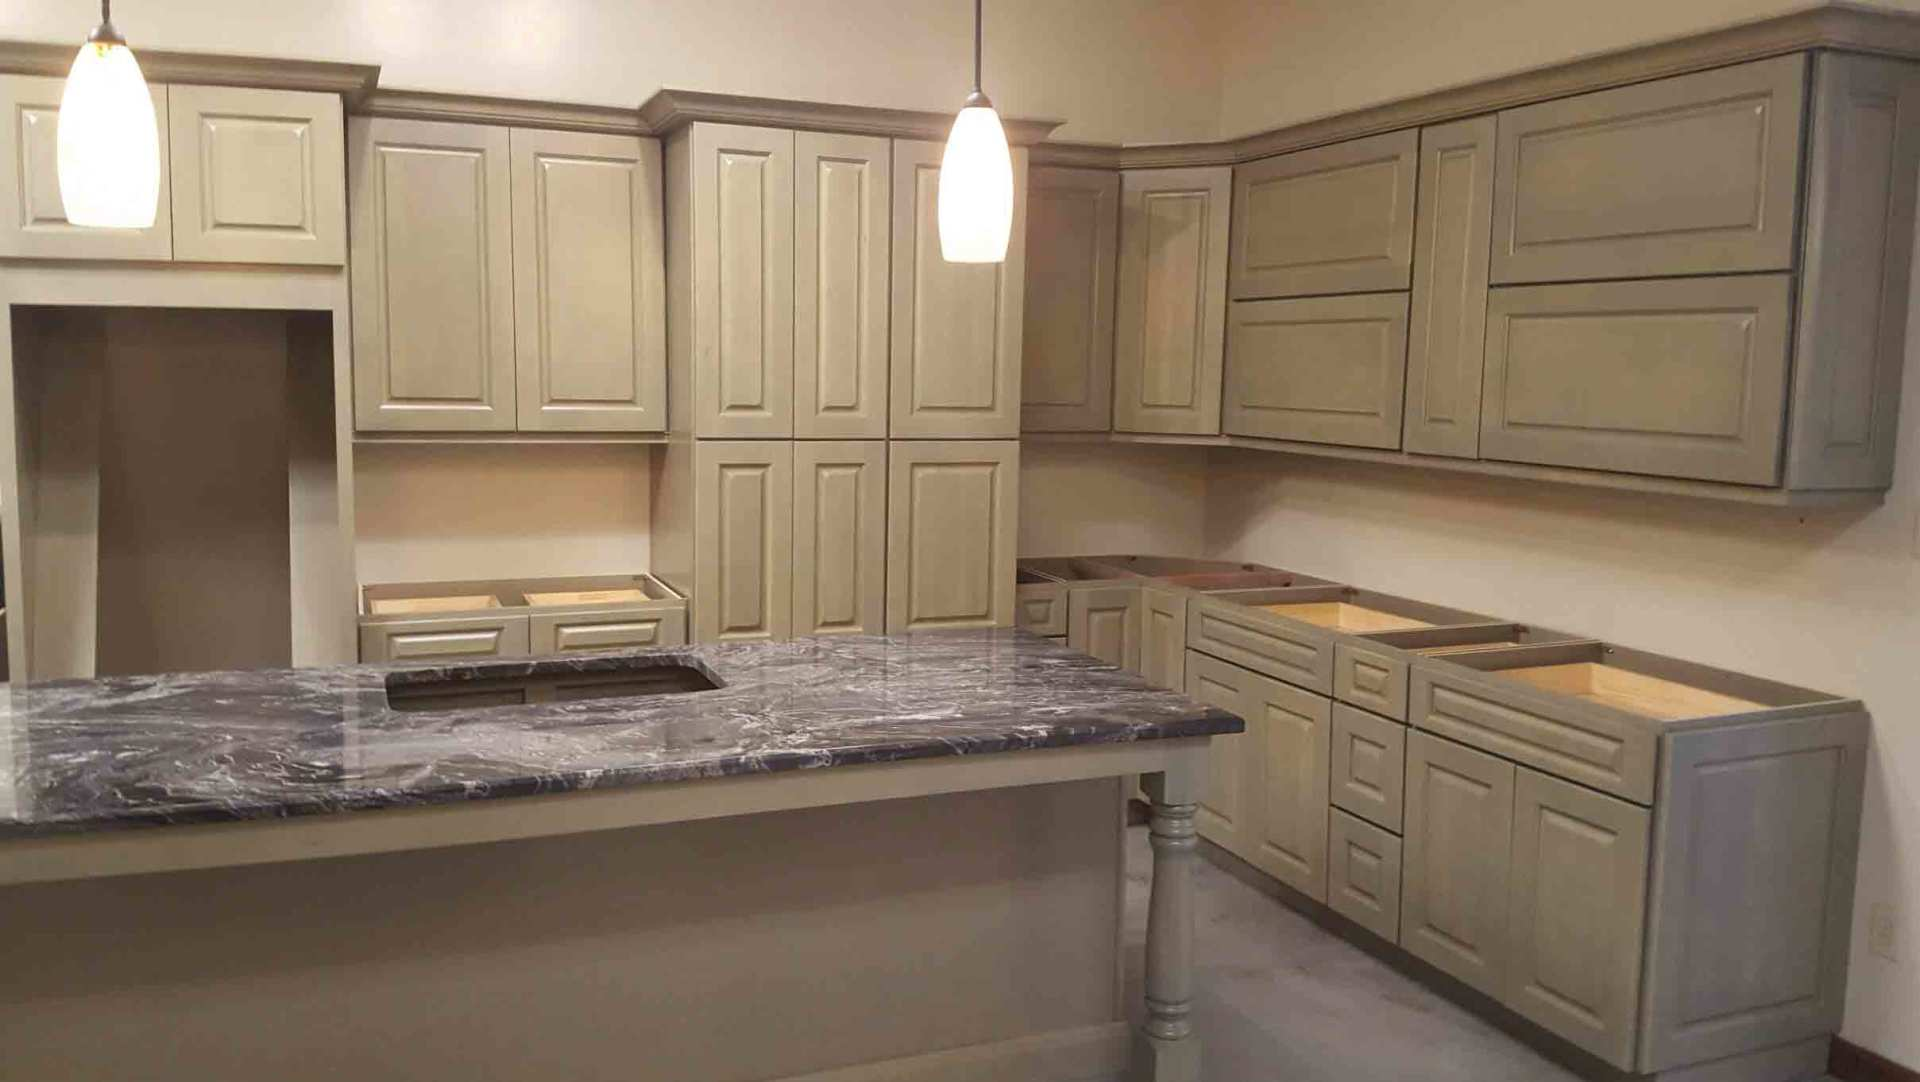 Wood Kitchen Cabinets in Jacksonville, FL | DL Cabinetry ...